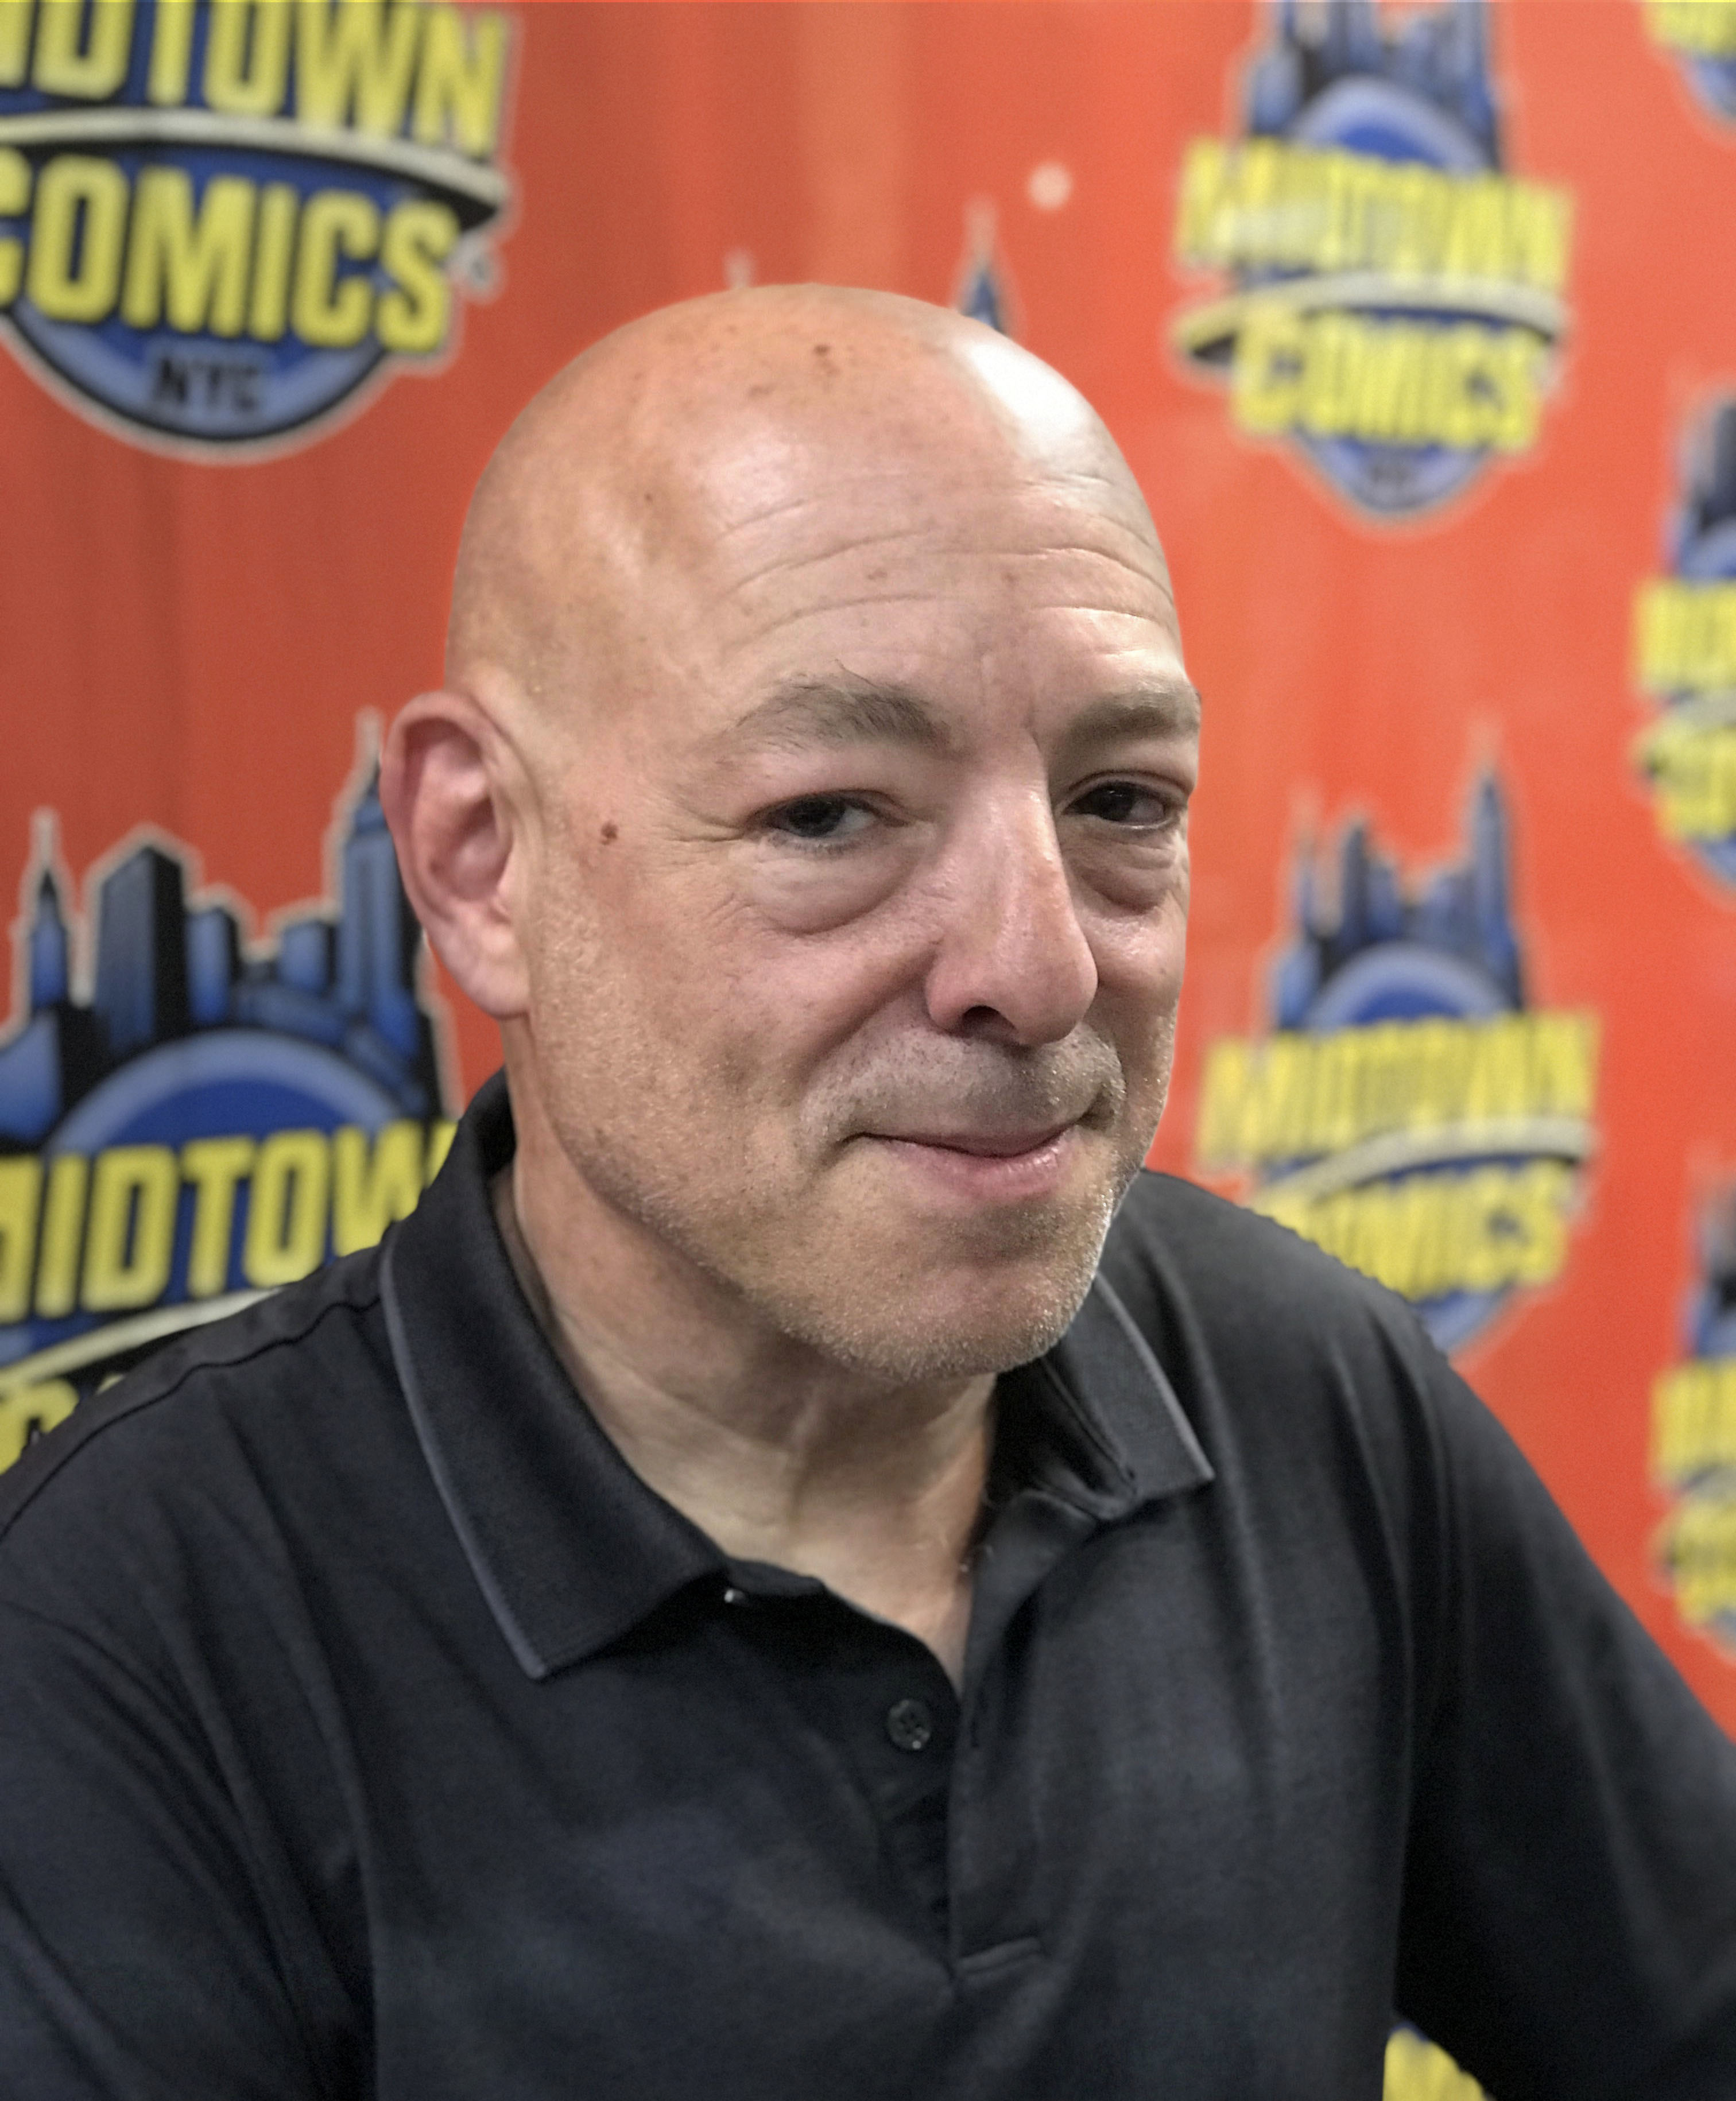 Bendis at an appearance at [[Midtown Comics]] in Manhattan